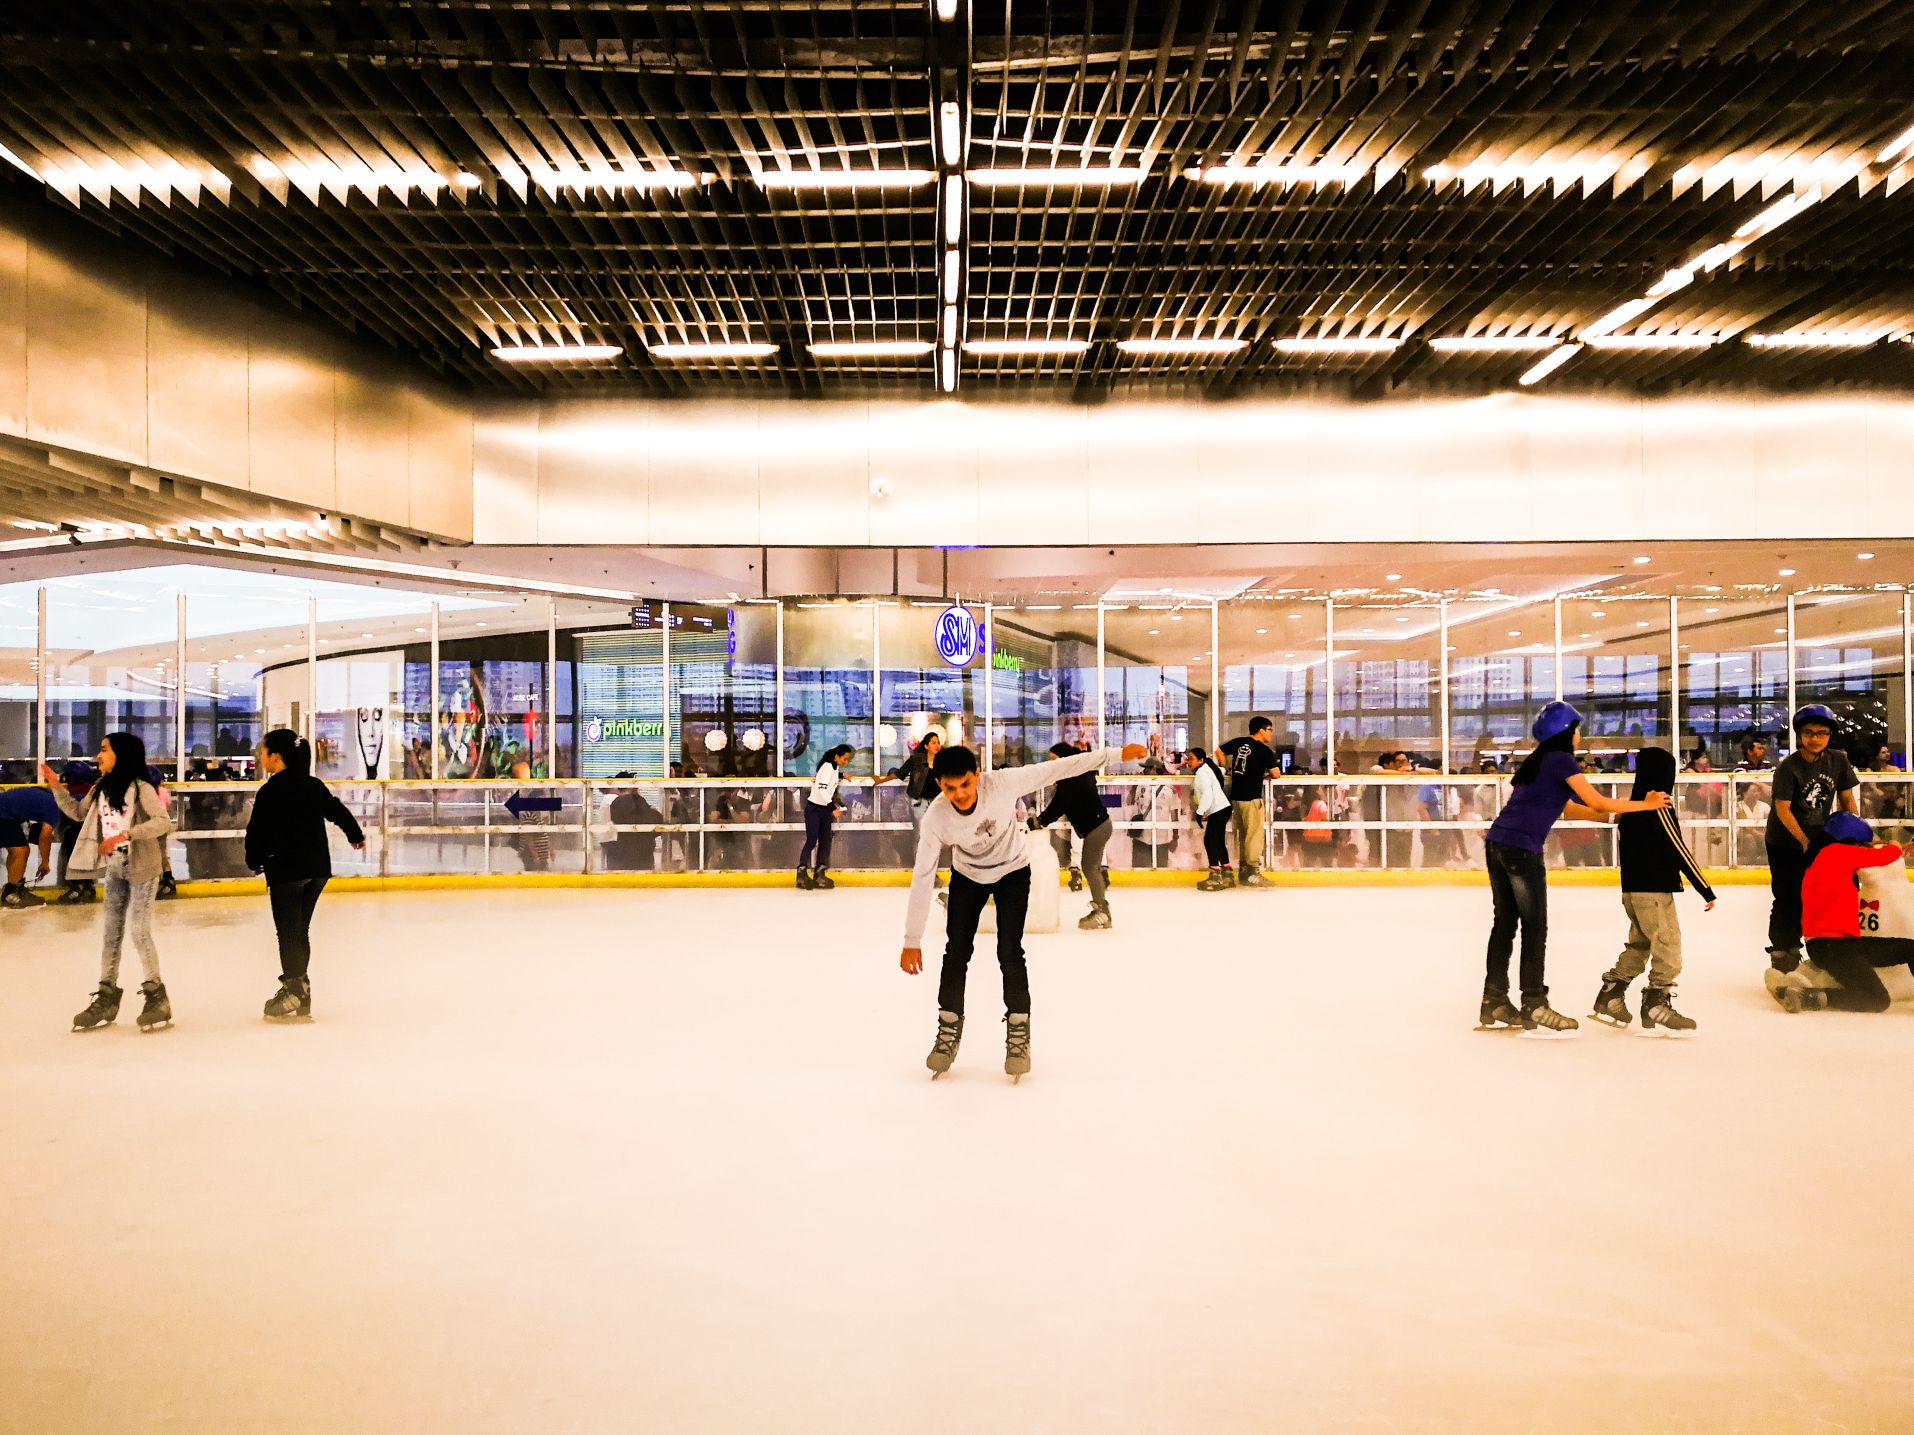 Ice Skating in SM Megamall, Philippines | Libot Tayo